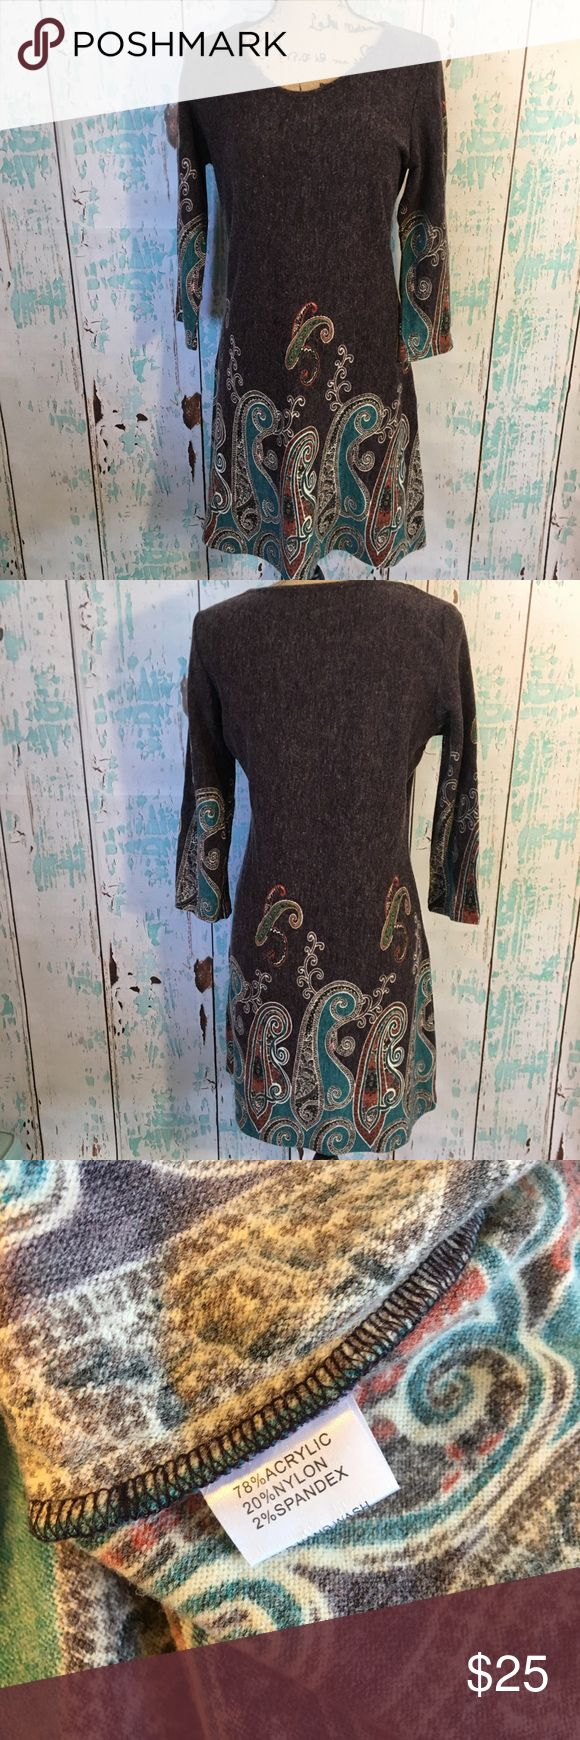 "Boutique paisley dress size medium Boutique paisley dress size medium  🌵Bundle deals available. I carry various sizes/brands. 🌵No trades, holds, or modeling. 🌵All reasonable offers accepted only through ""offer"" button. No lowball offers please. Please submit final offer willing to pay as I prefer to not counteroffer. 🌵Happy Poshing! Anuna's Dresses"